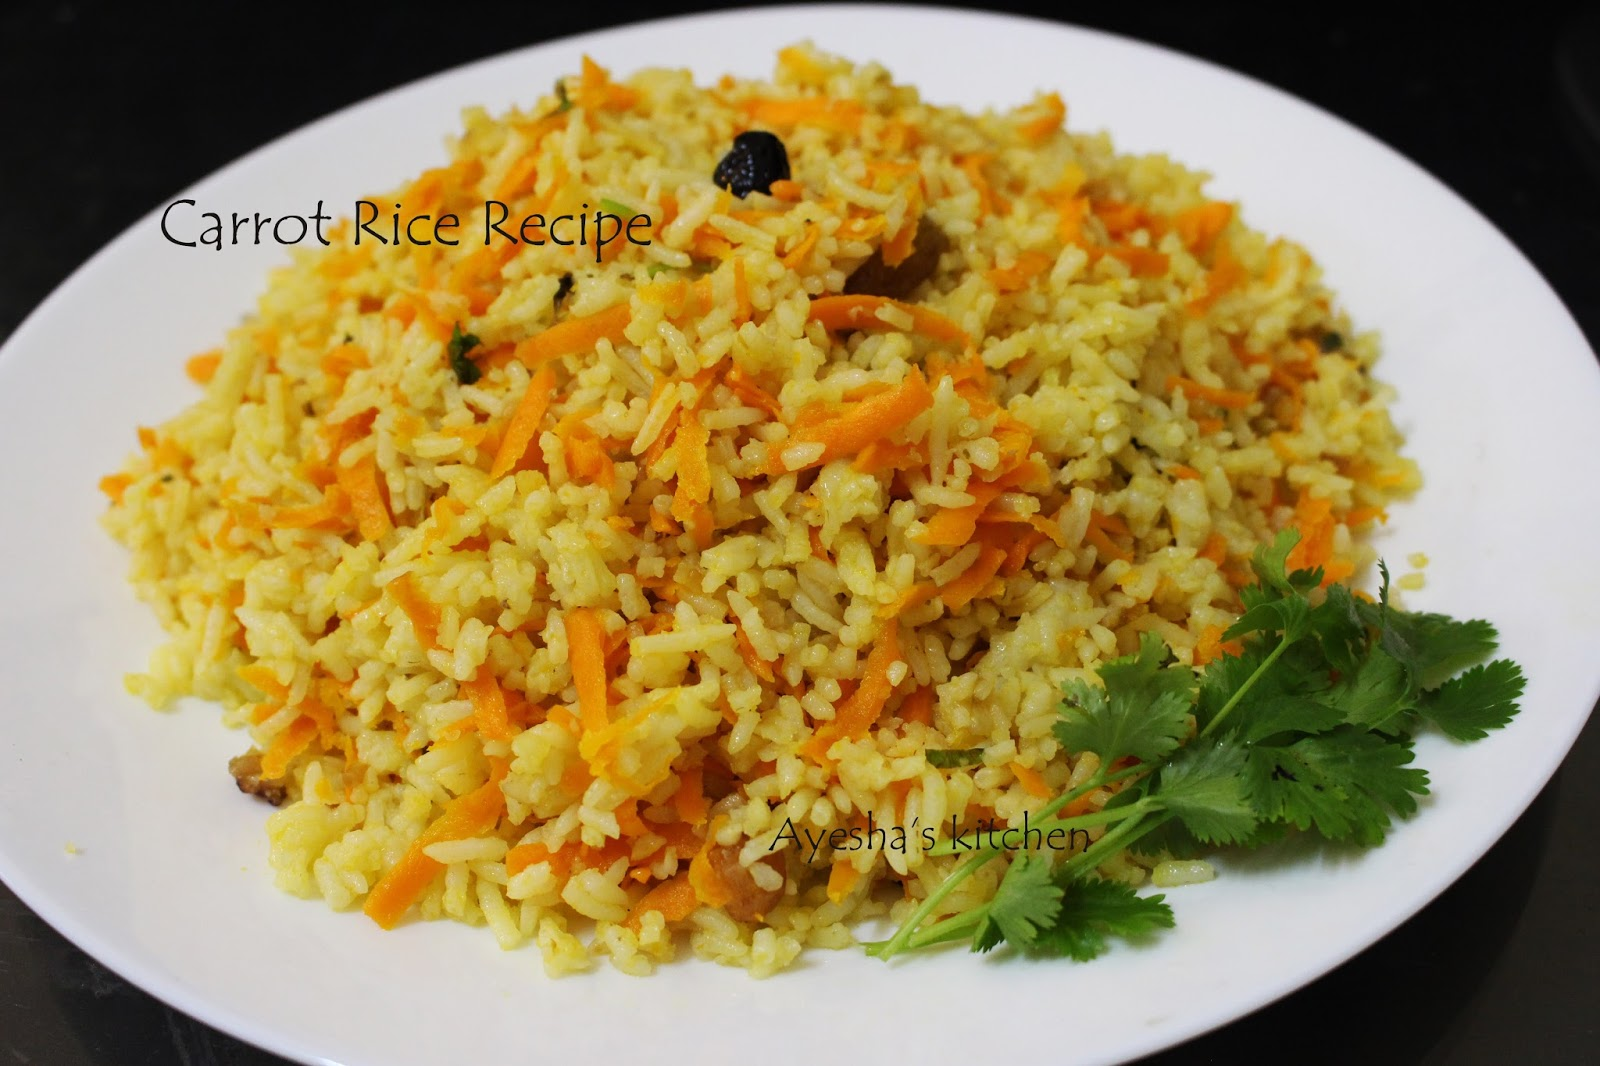 Indian food recipes indian recipes desi food desi recipes carrot rice how to make carrot rice quick lunch dinner ideas forumfinder Gallery